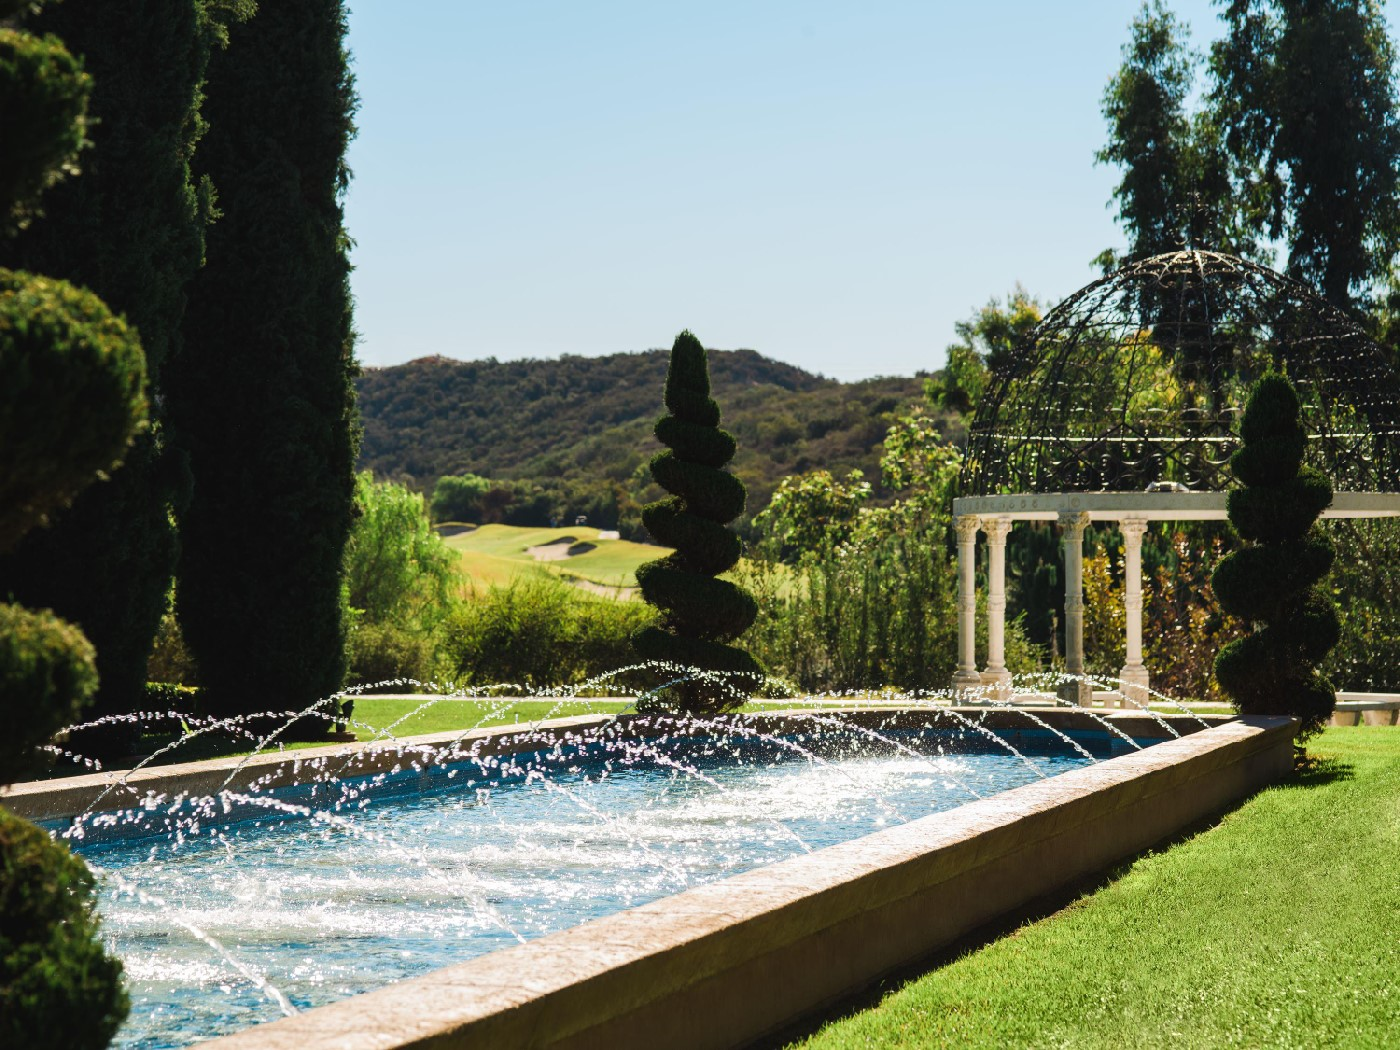 Water feature in the gardens.